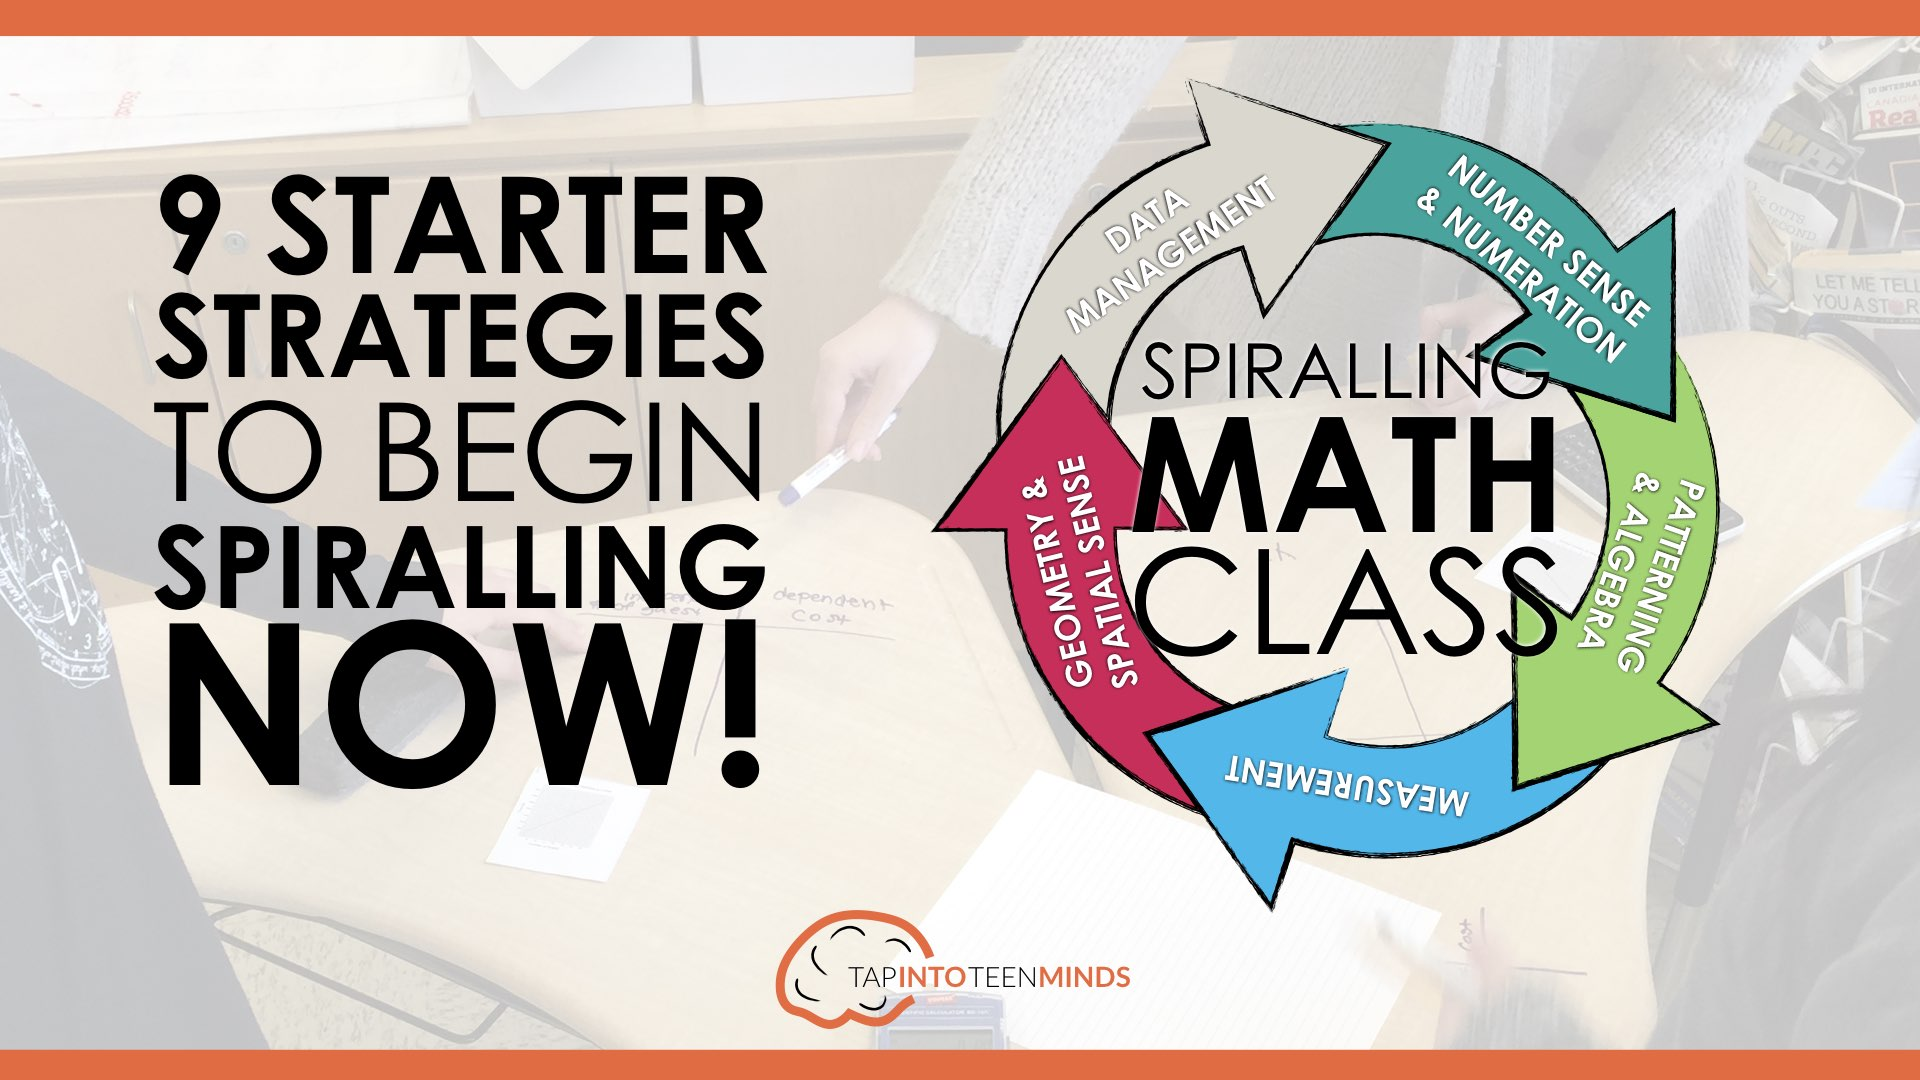 Spiralling Your Math Curriculum - 9 Starter Strategies to Begin Spiralling Now